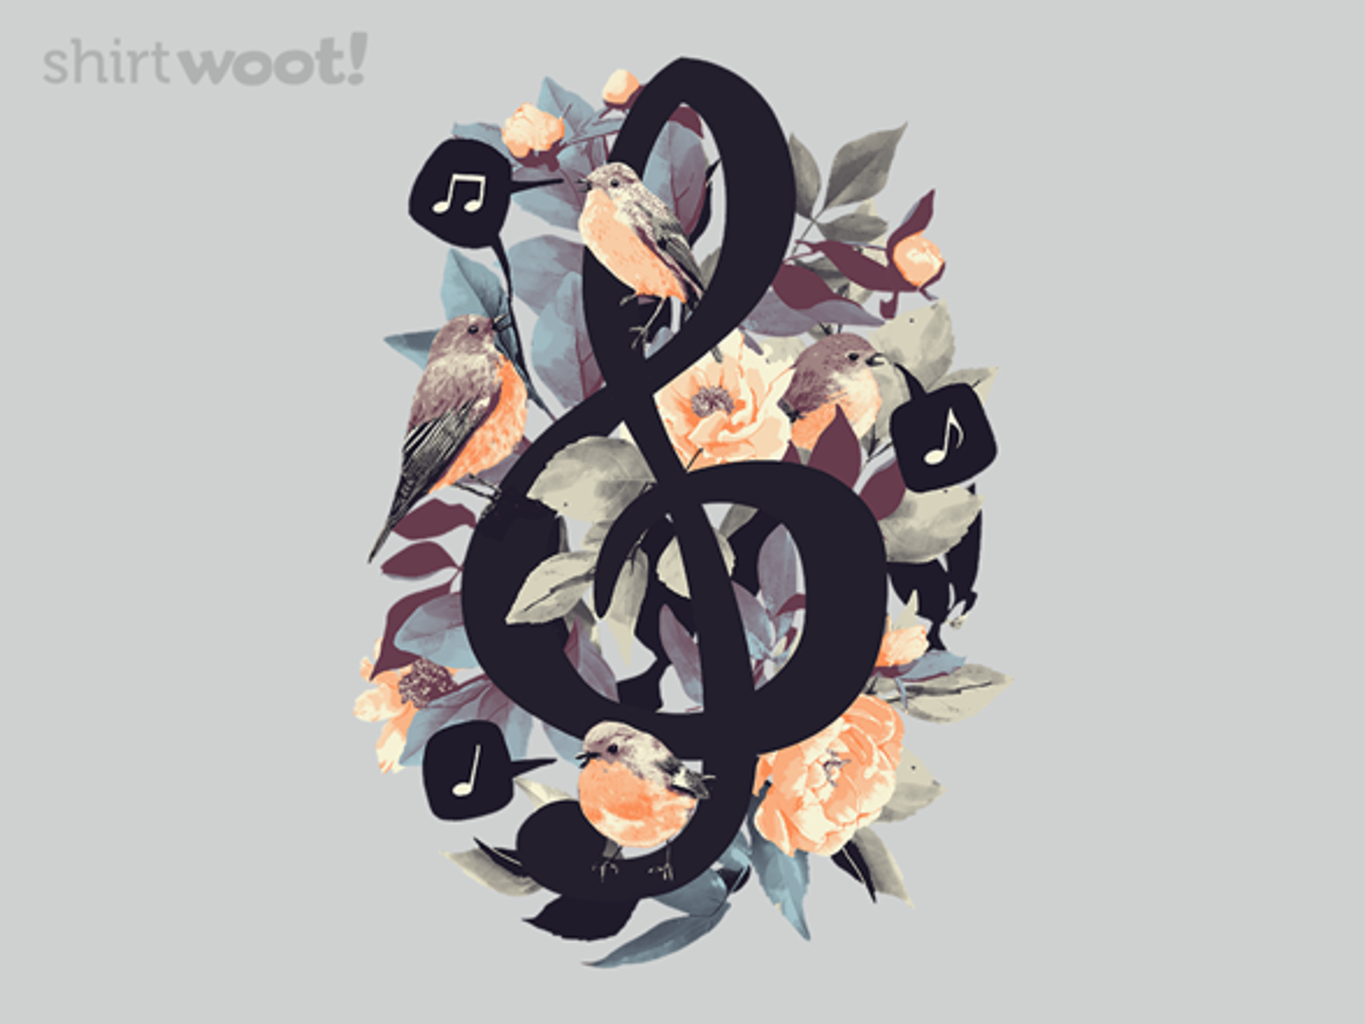 Woot!: Songbirds - $15.00 + Free shipping